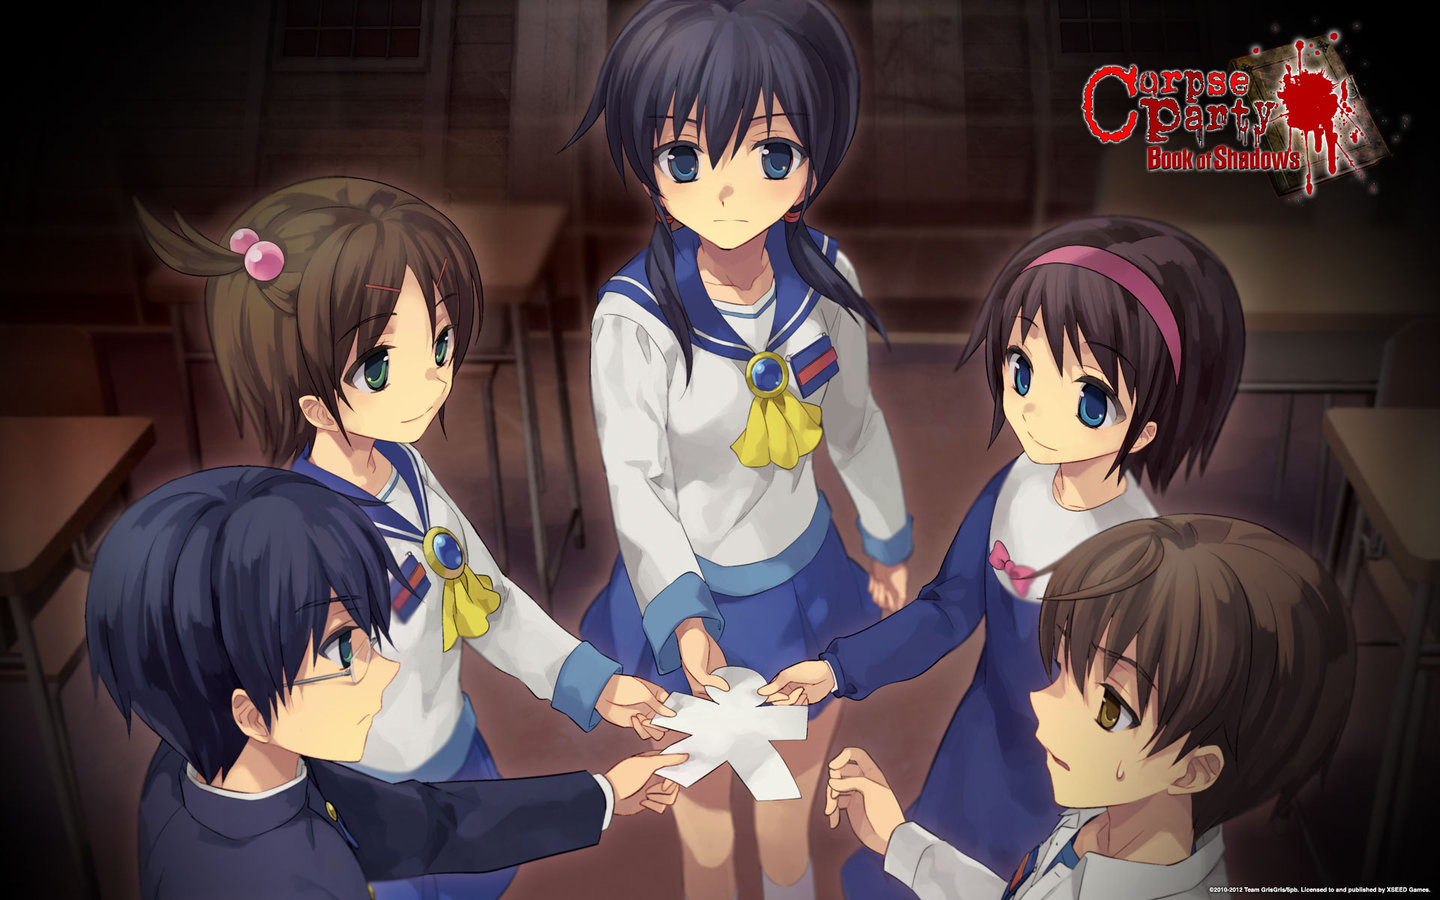 Amazing Corpse Party Pictures & Backgrounds